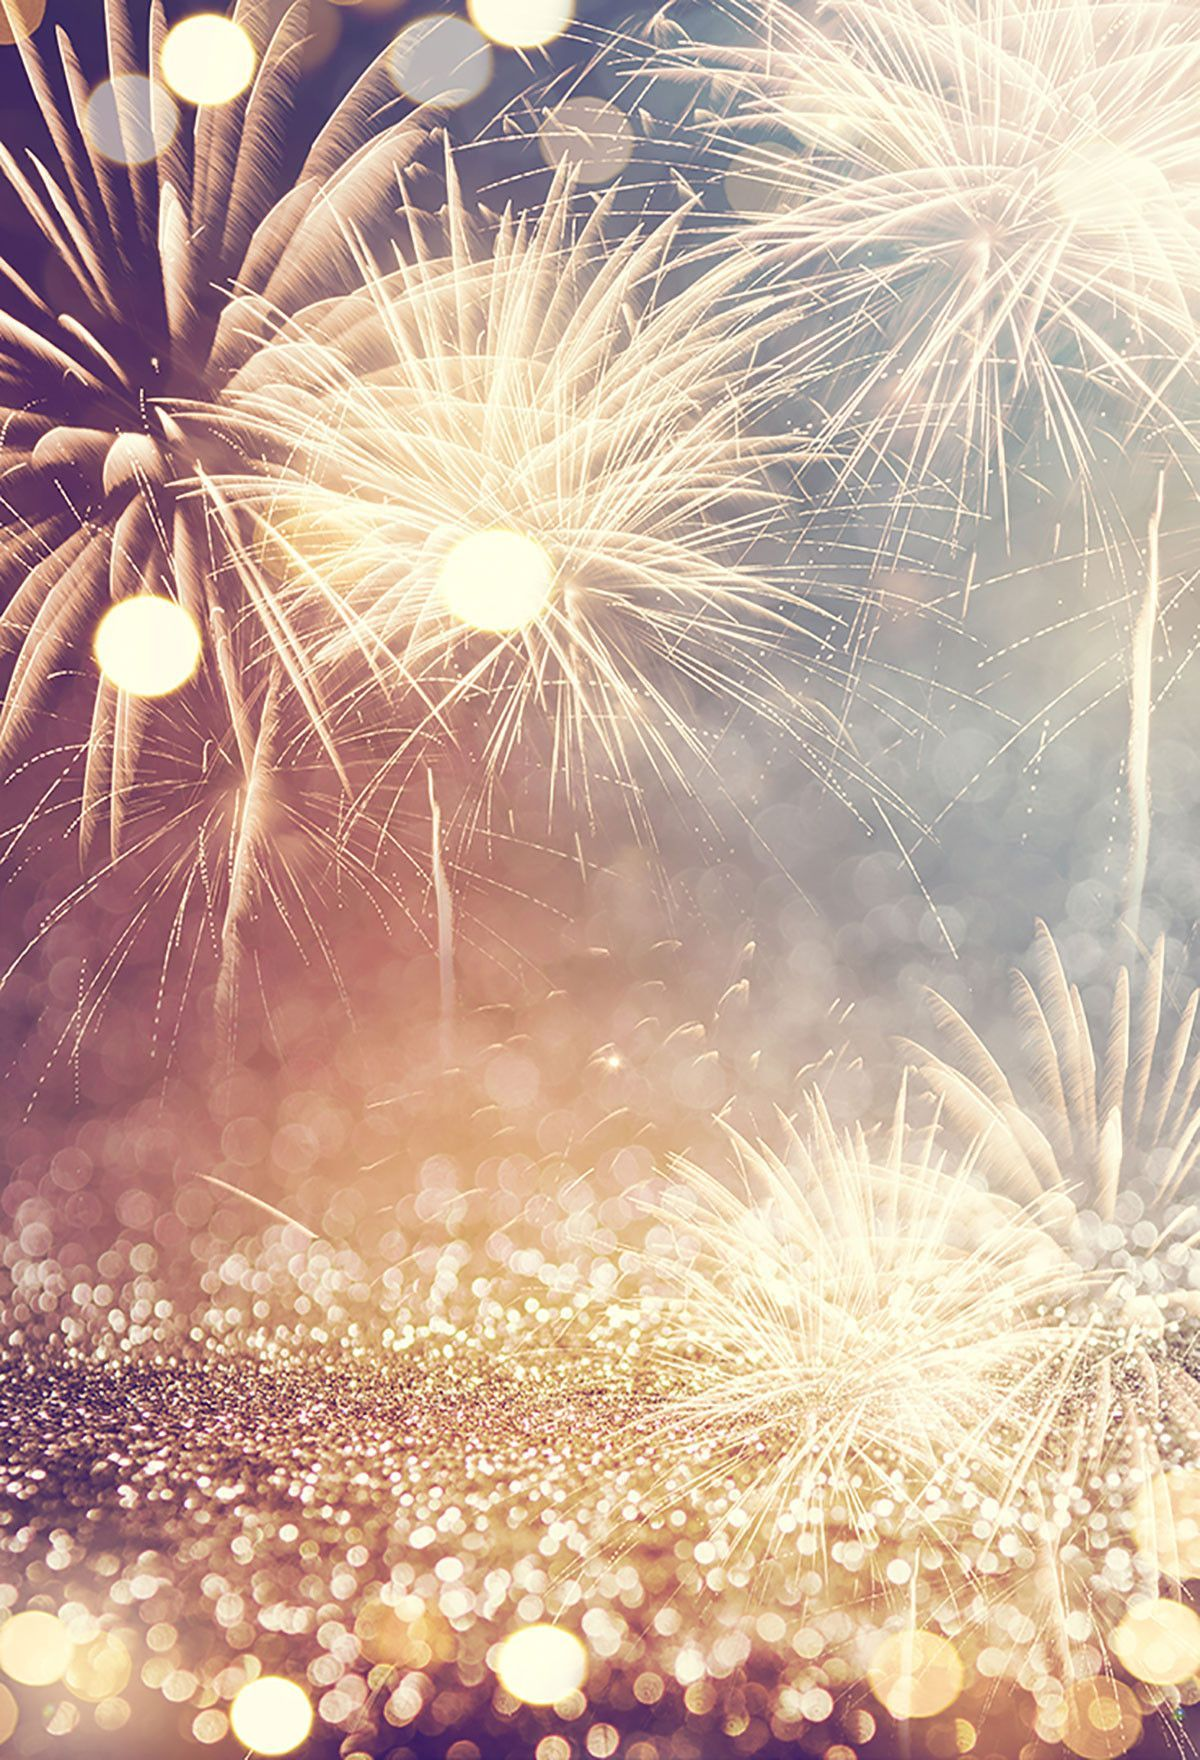 Bokeh Blurred Backdrops Fireworks Background Diy Backdrops